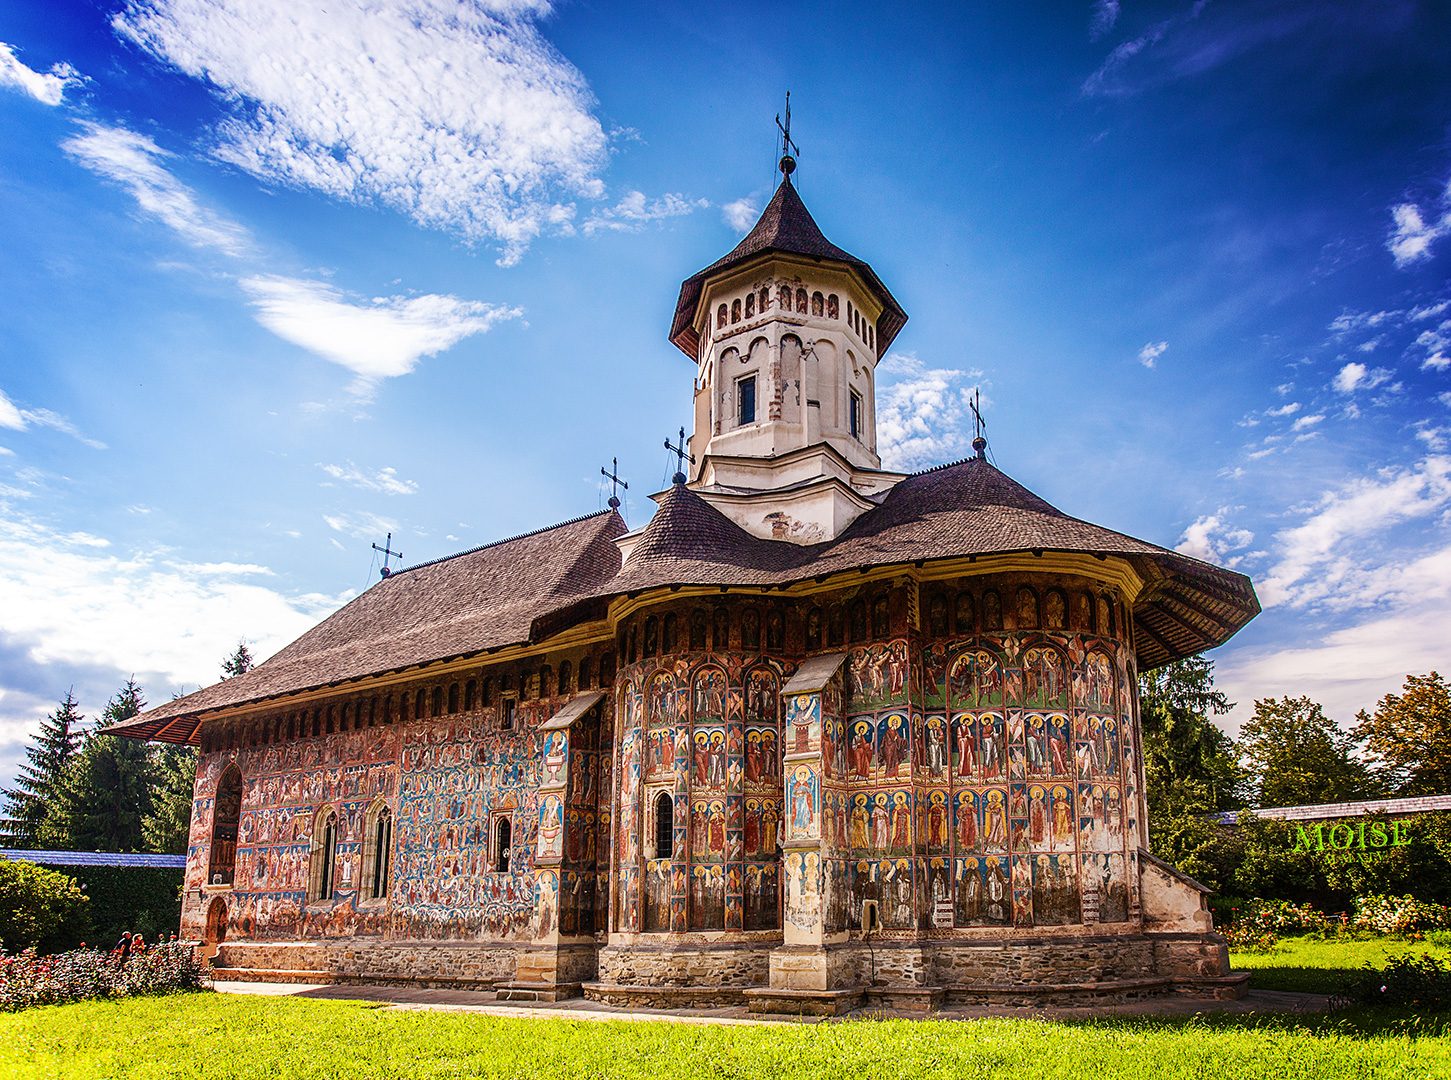 Painted monastery; incredible spots to visit in Romania